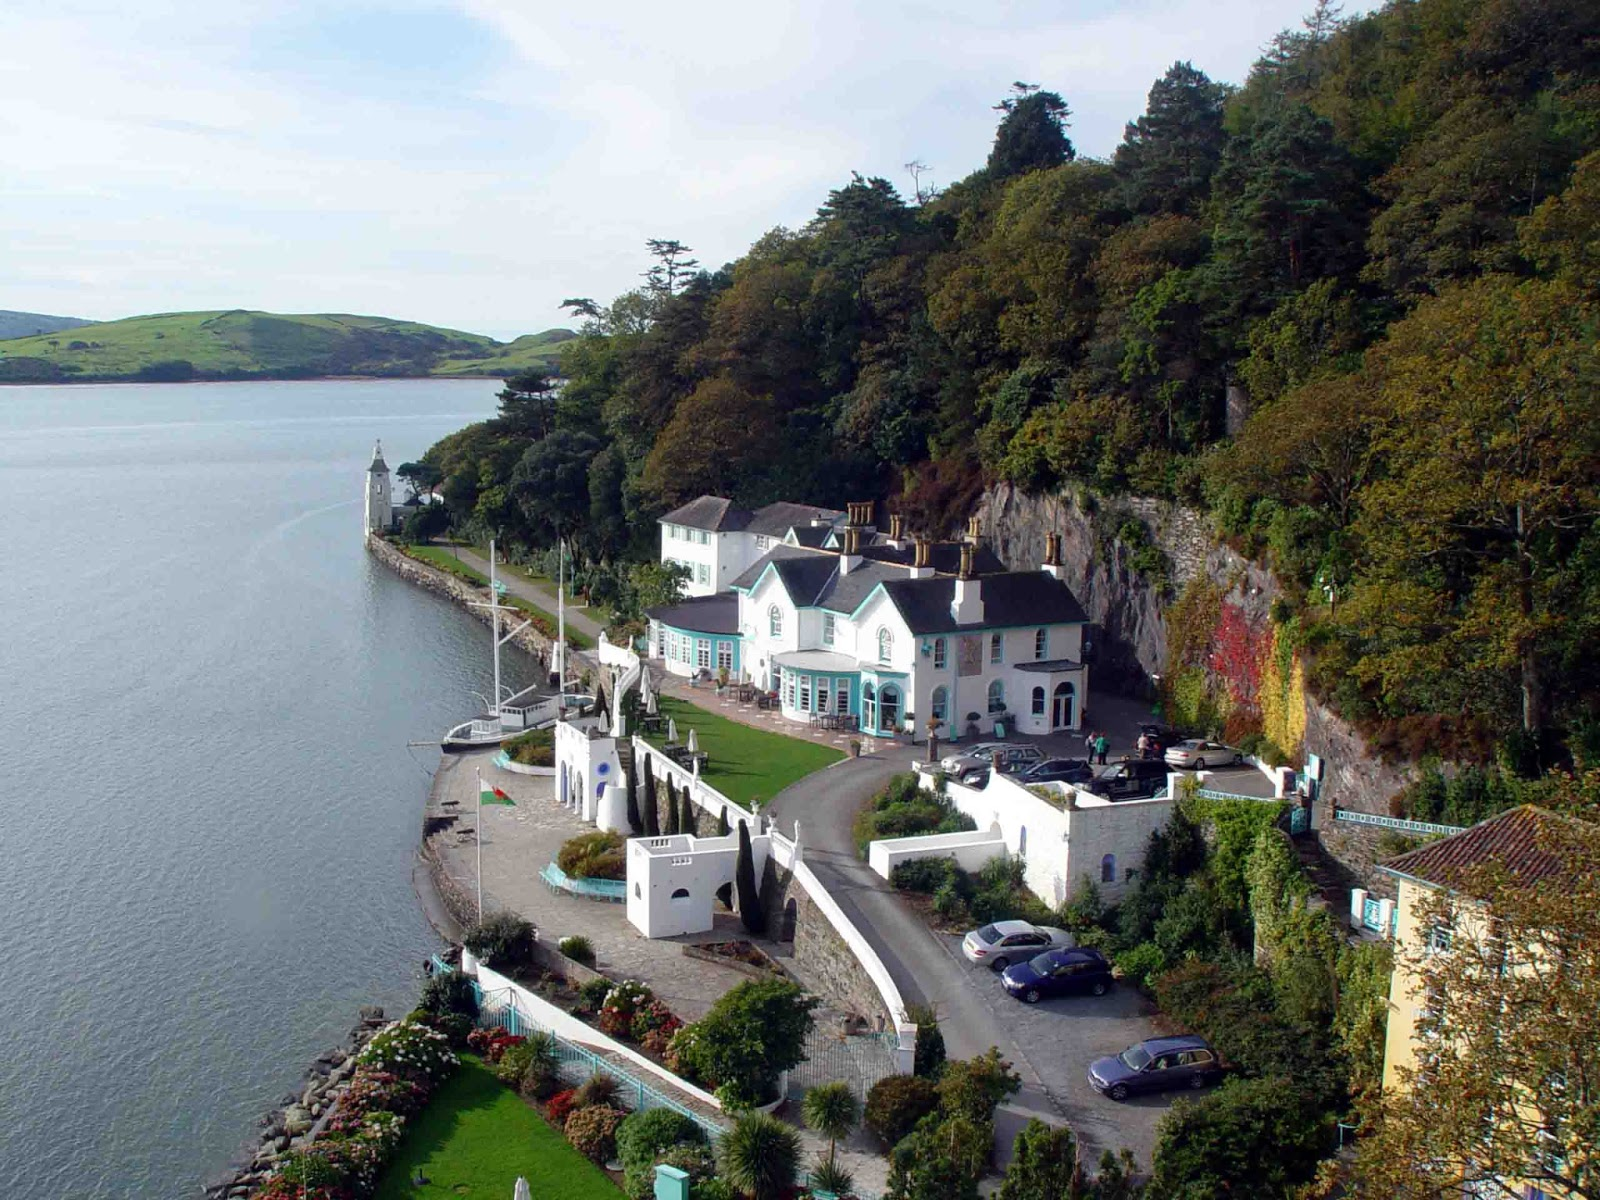 Portmeirion North Wales, PORTMEIRION, NORTH WALES | I SPILLED THE BEANS